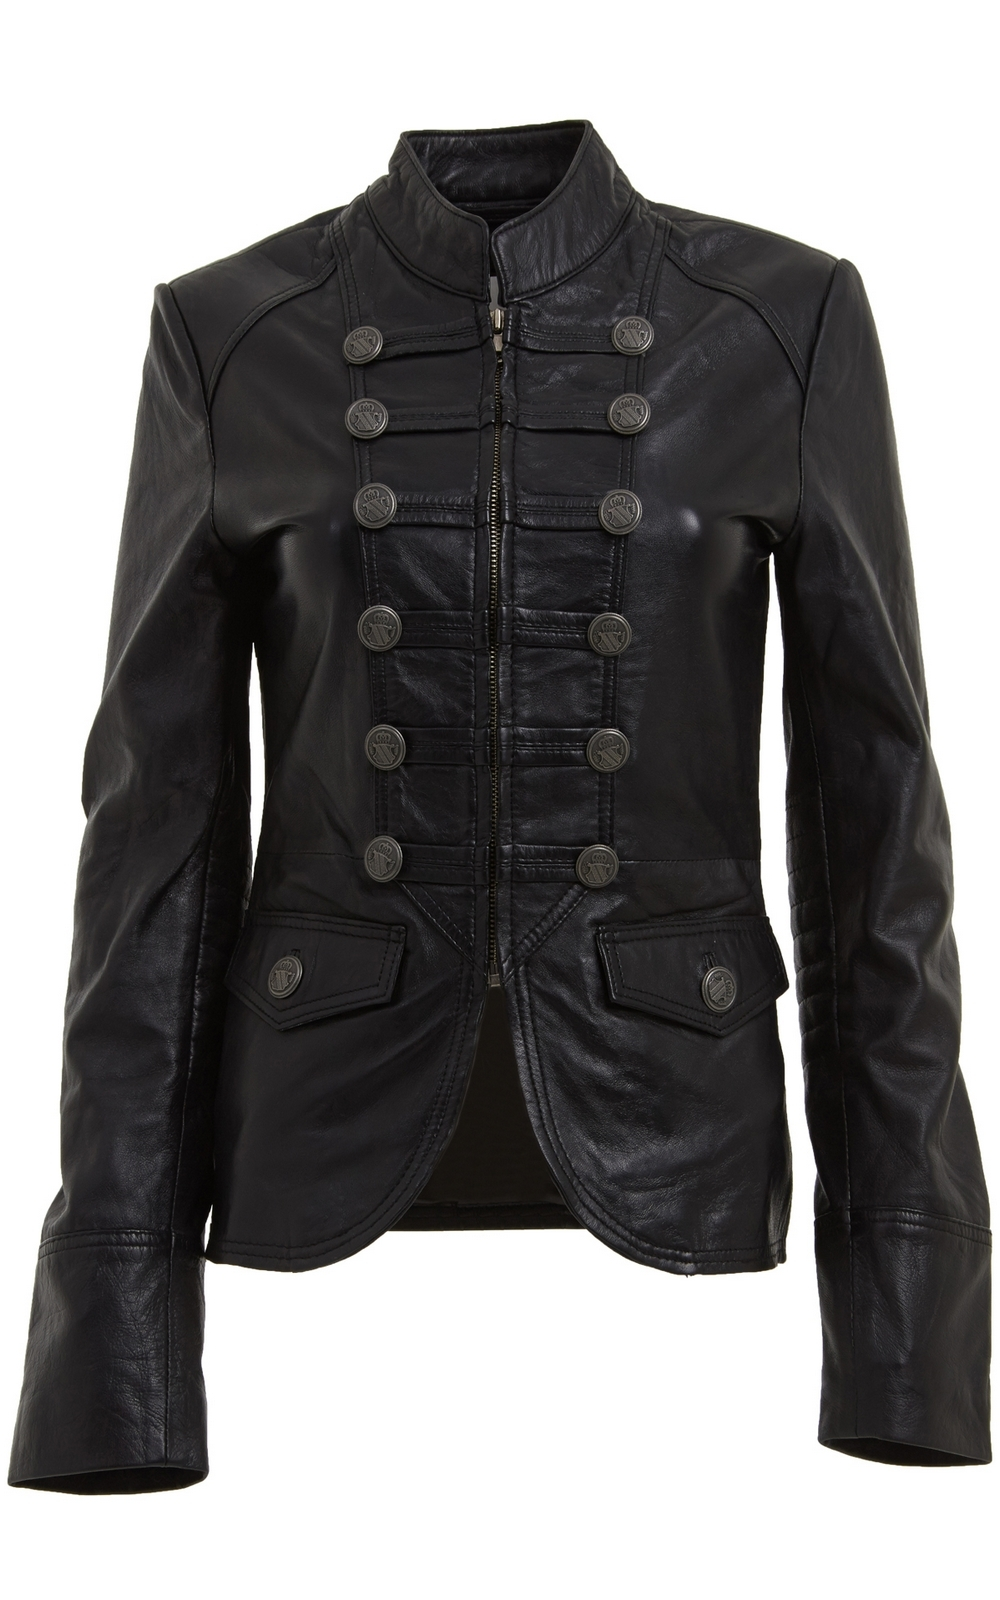 Womens Military Style Leather Blazer Jacket Womens Outerwear Leather Jacket Coats Jackets